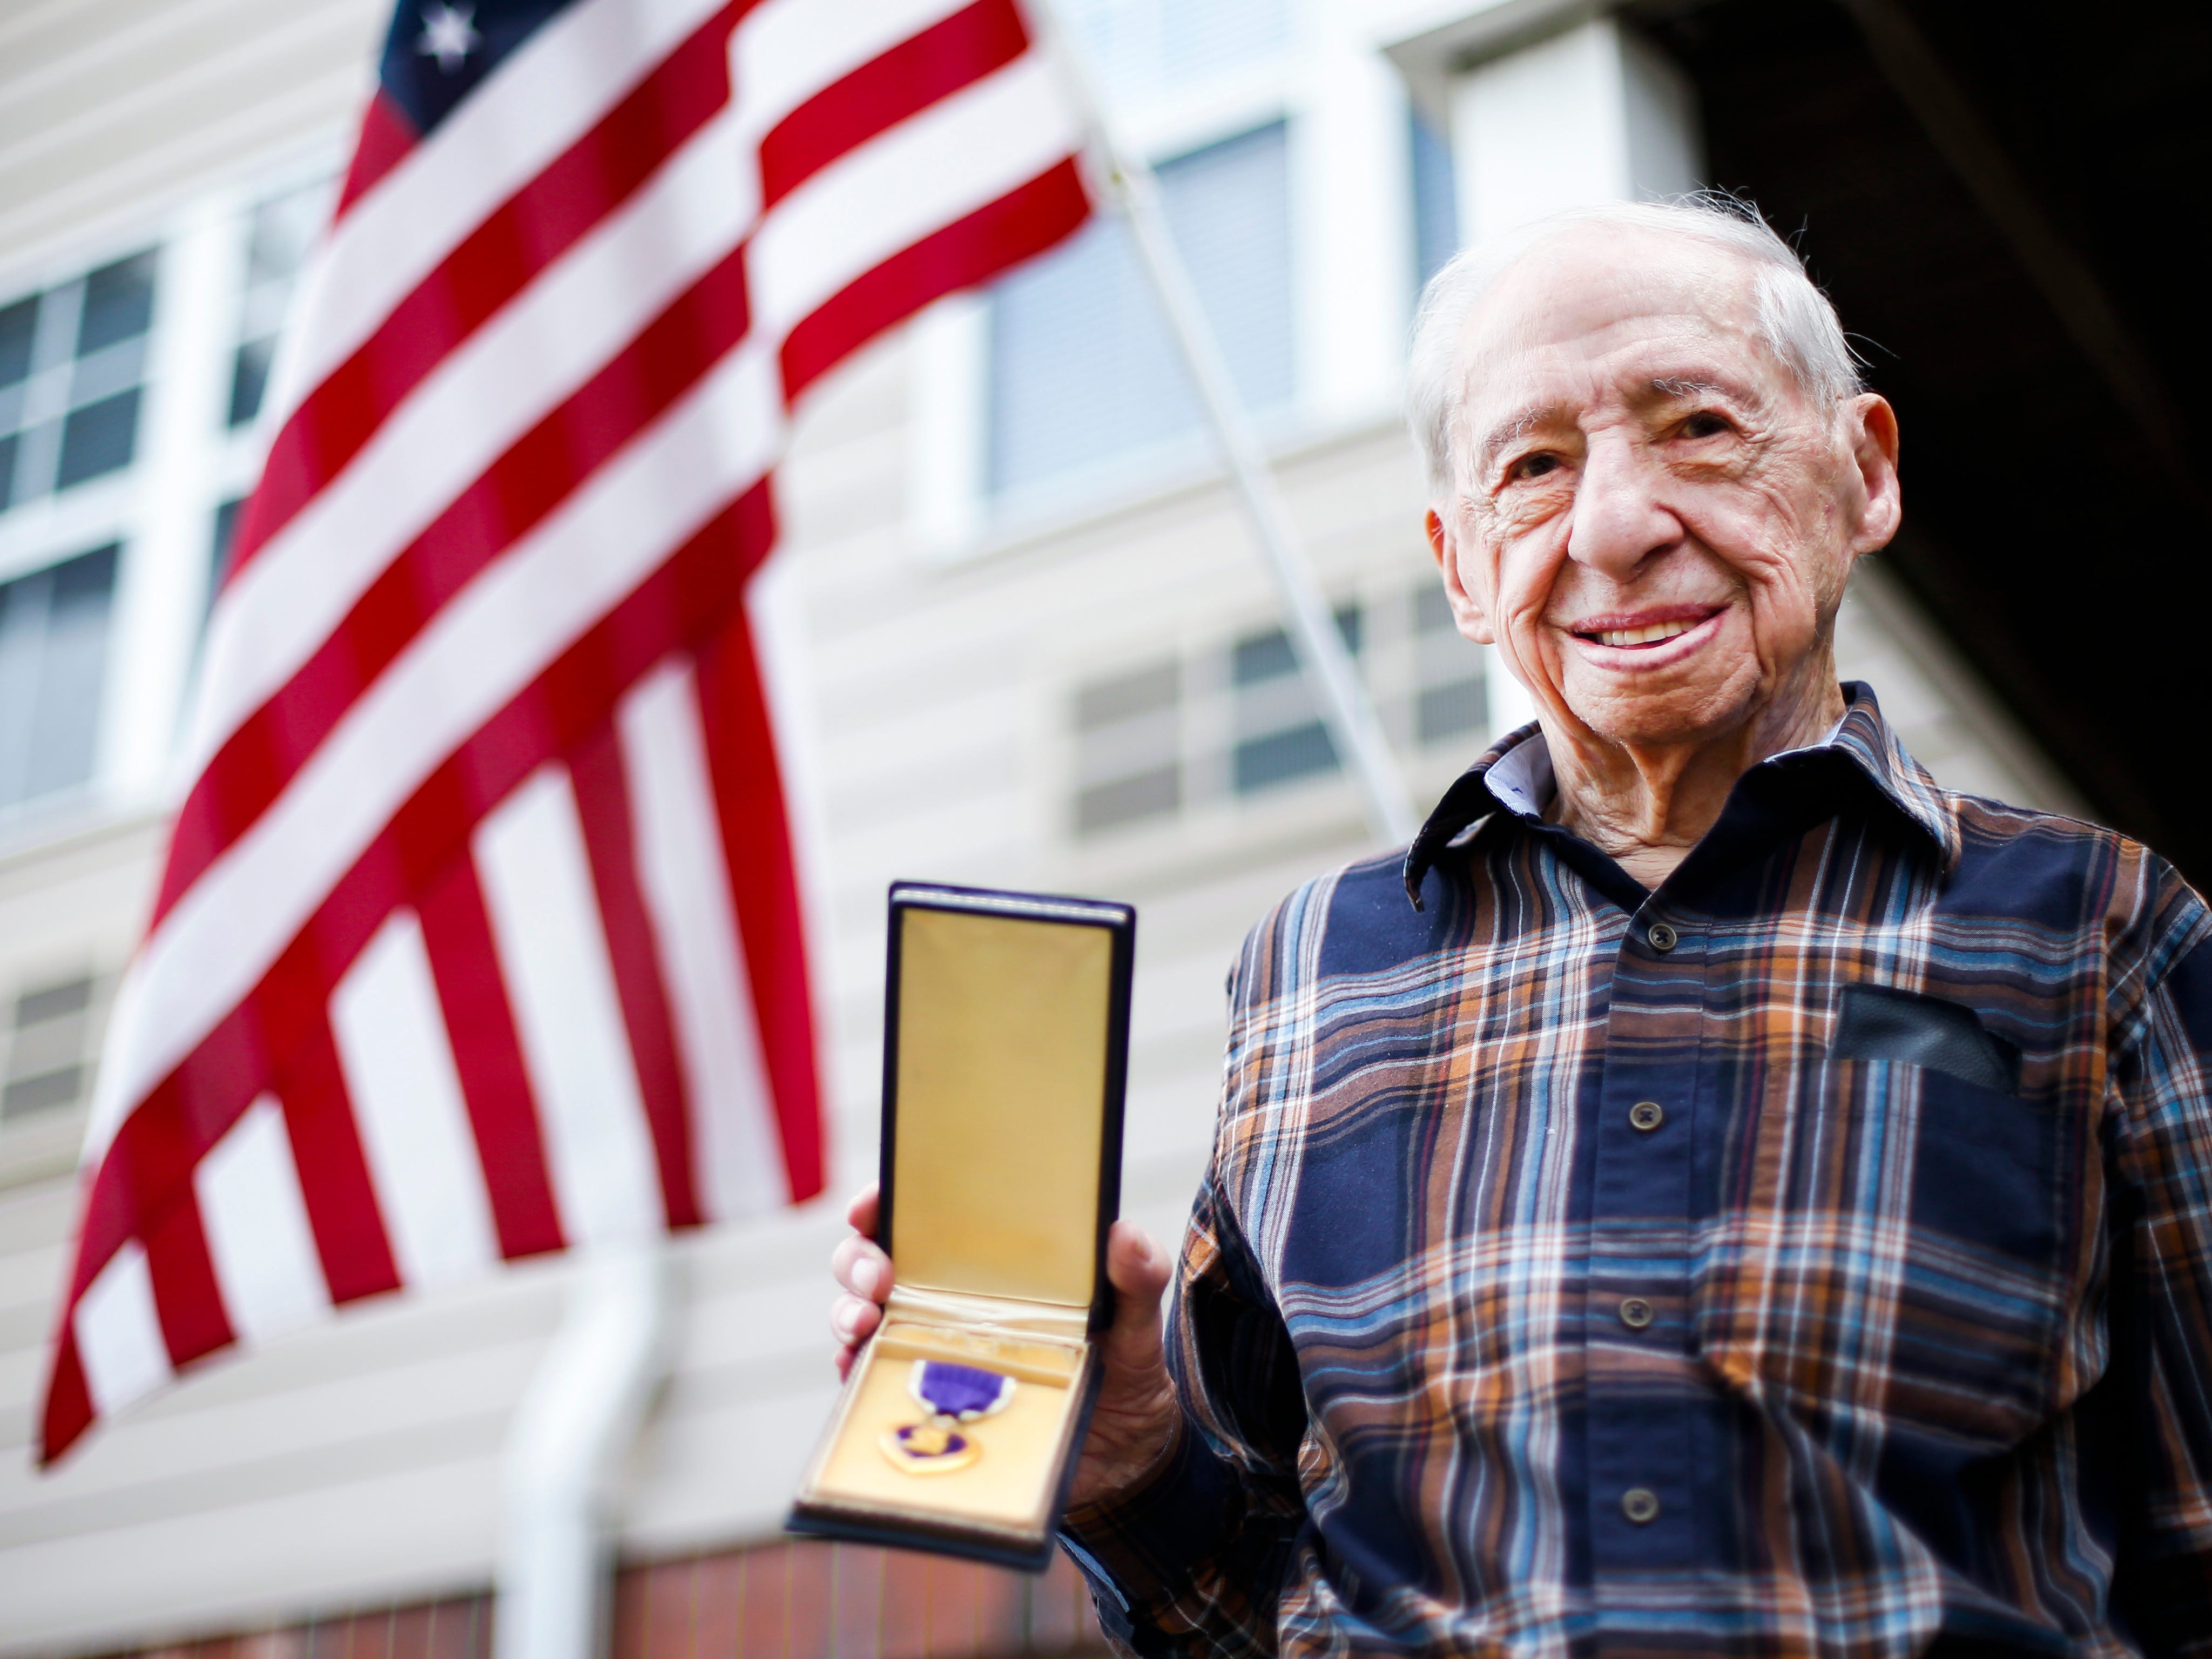 Stephen Floyd holds his Purple Heart medal that he was awarded after the B-17 bomber he was in during WWII was shot down over Germany. Floyd was a captured by Germany soldiers and was a POW for several months.